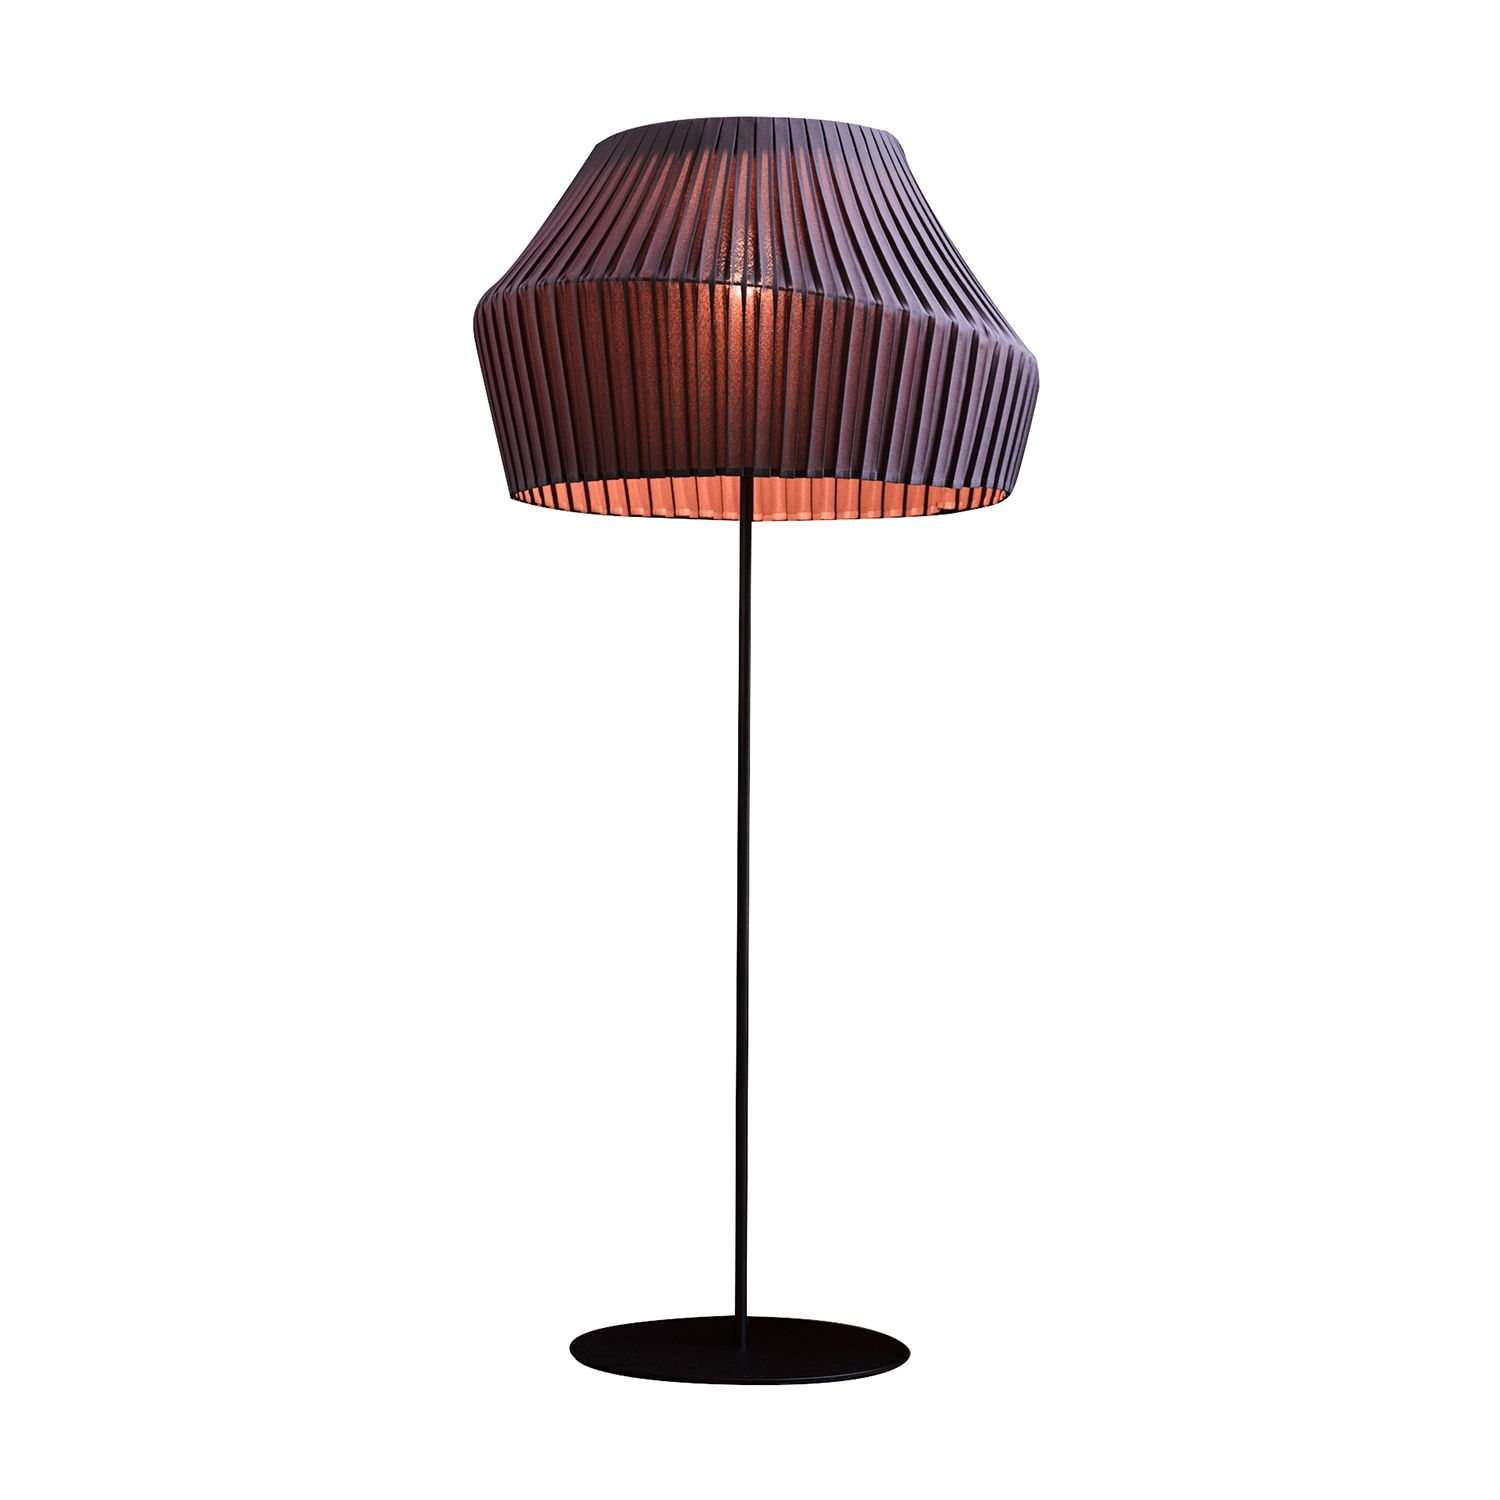 Pleat vloerlamp Hollands Licht